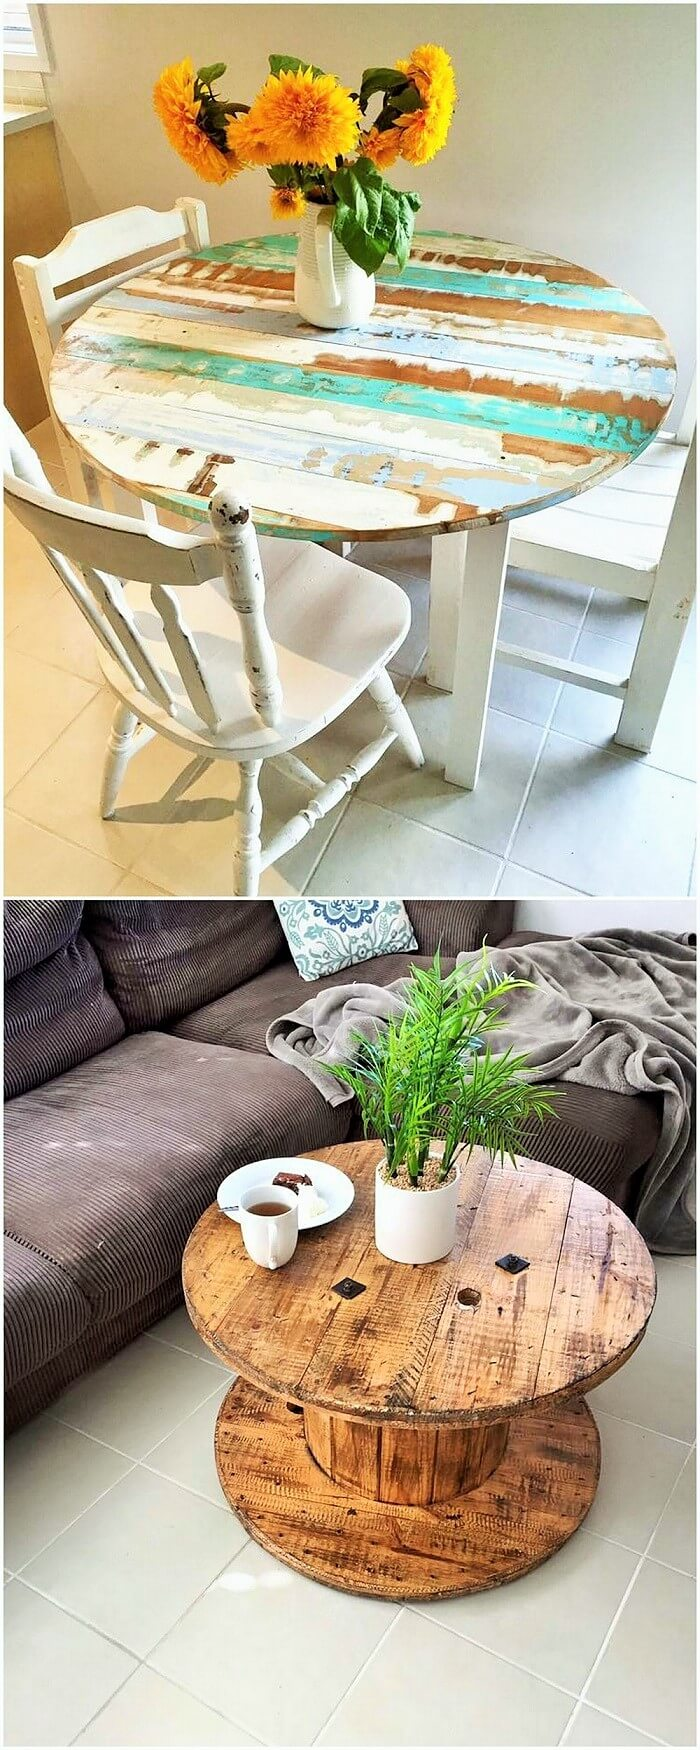 Wooden Pallets Table Ideas (4)